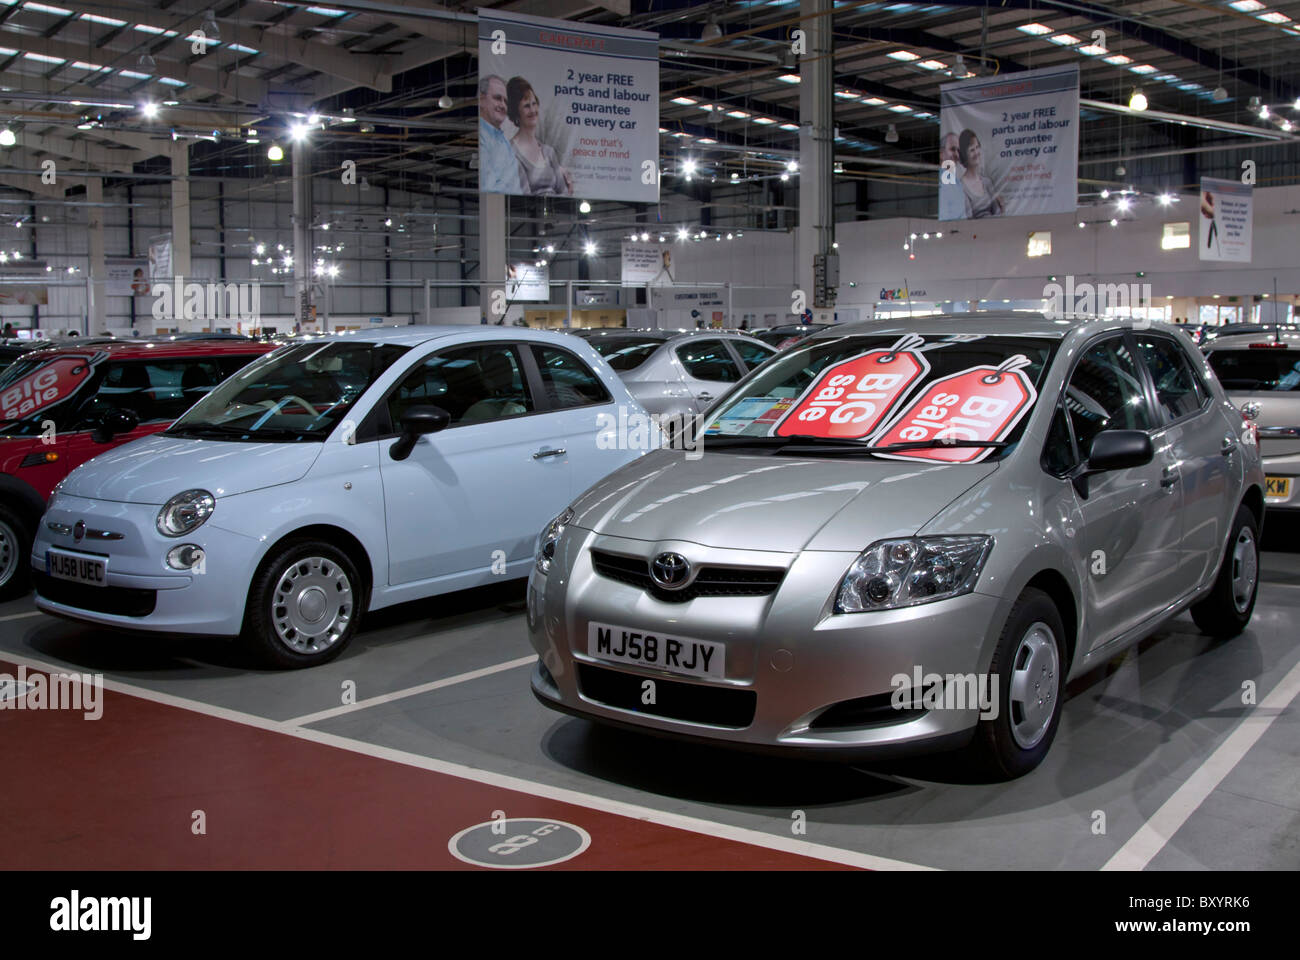 Used Car Dealers London >> Carcraft Used Car Showroom Enfield London Stock Photo